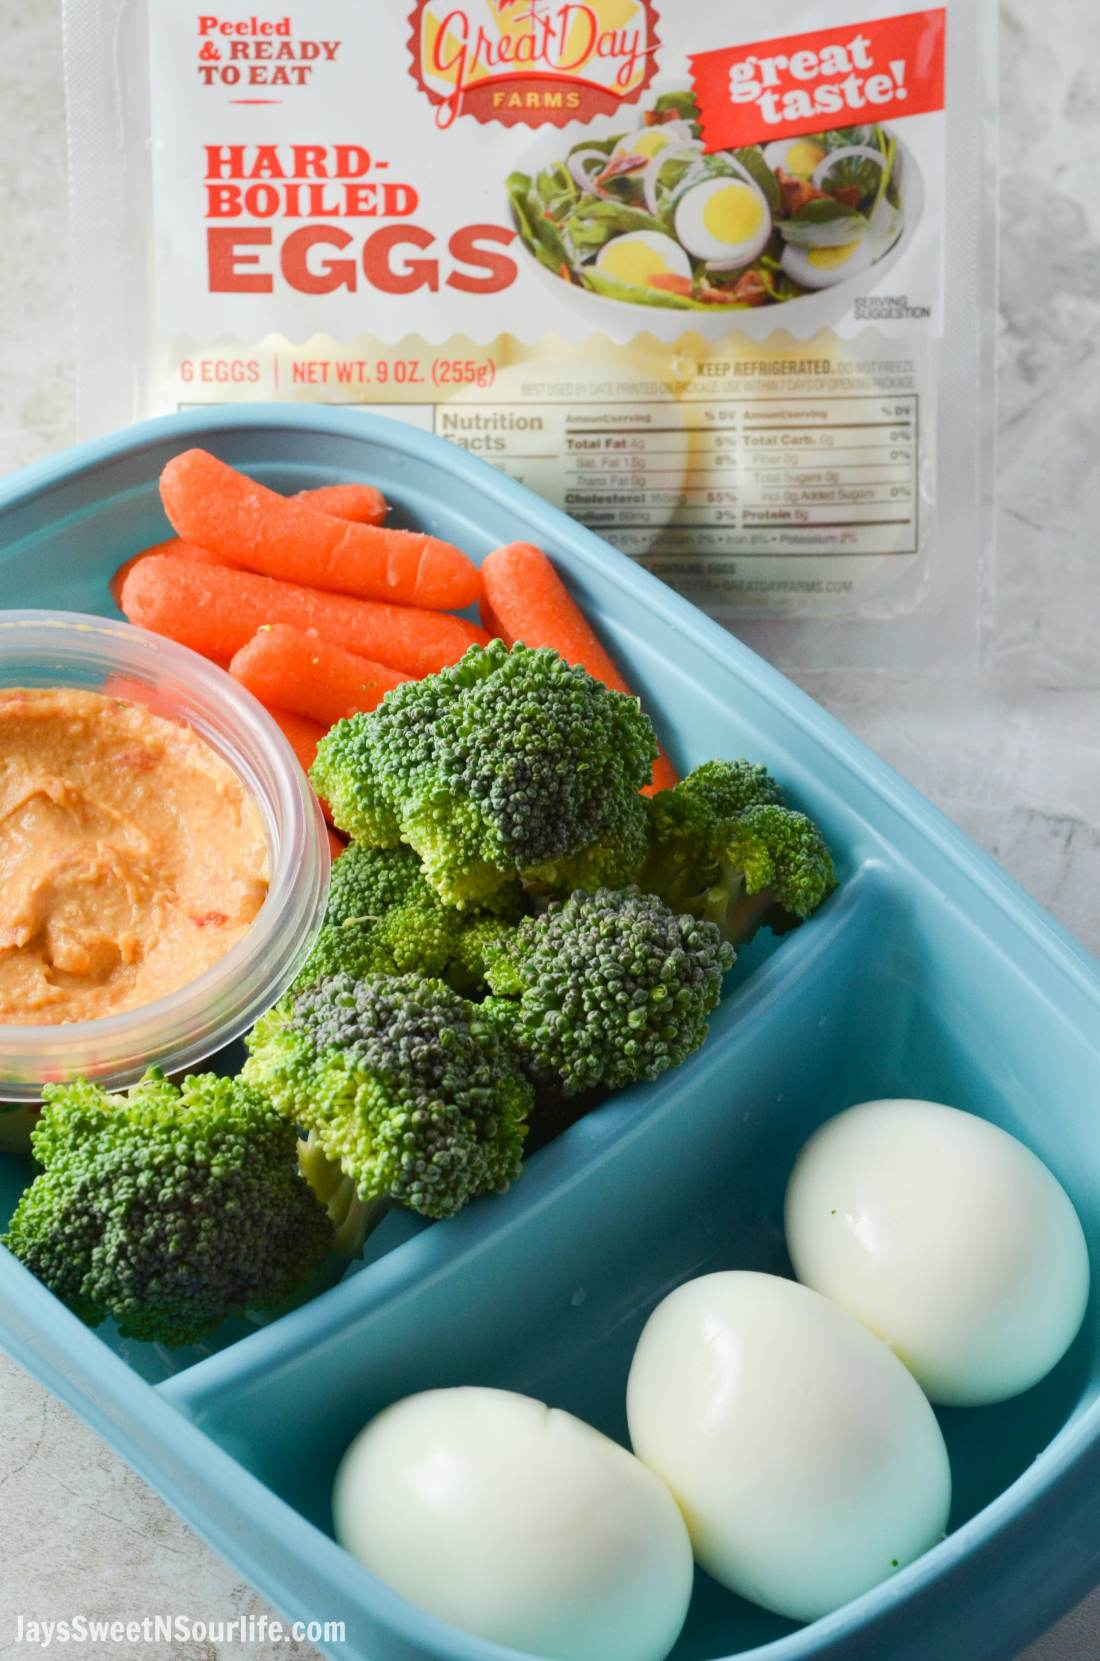 Veggie Meal Prep Bowl. Learn how to meal prep the easy way with my no cook meal prep ideas.